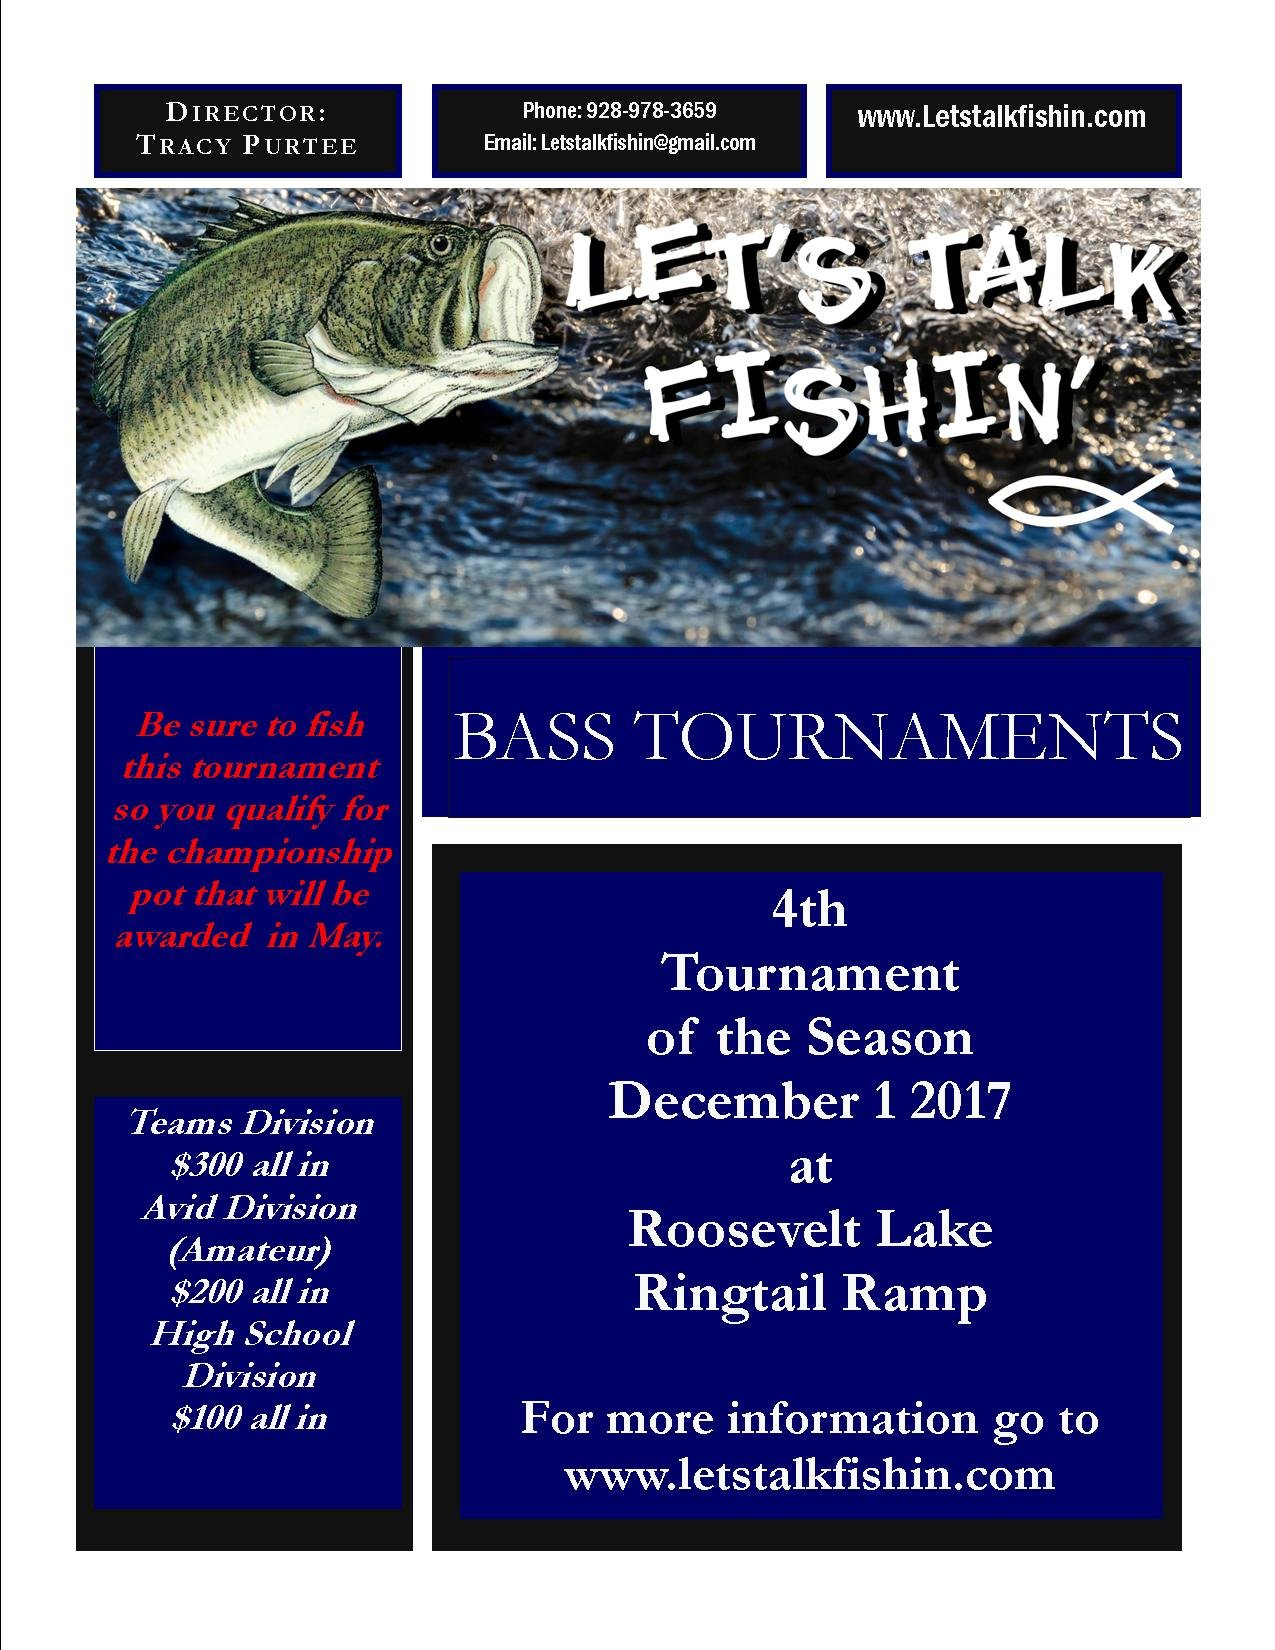 Click image for larger version  Name:4th Tournament.jpg Views:1802 Size:285.4 KB ID:96770